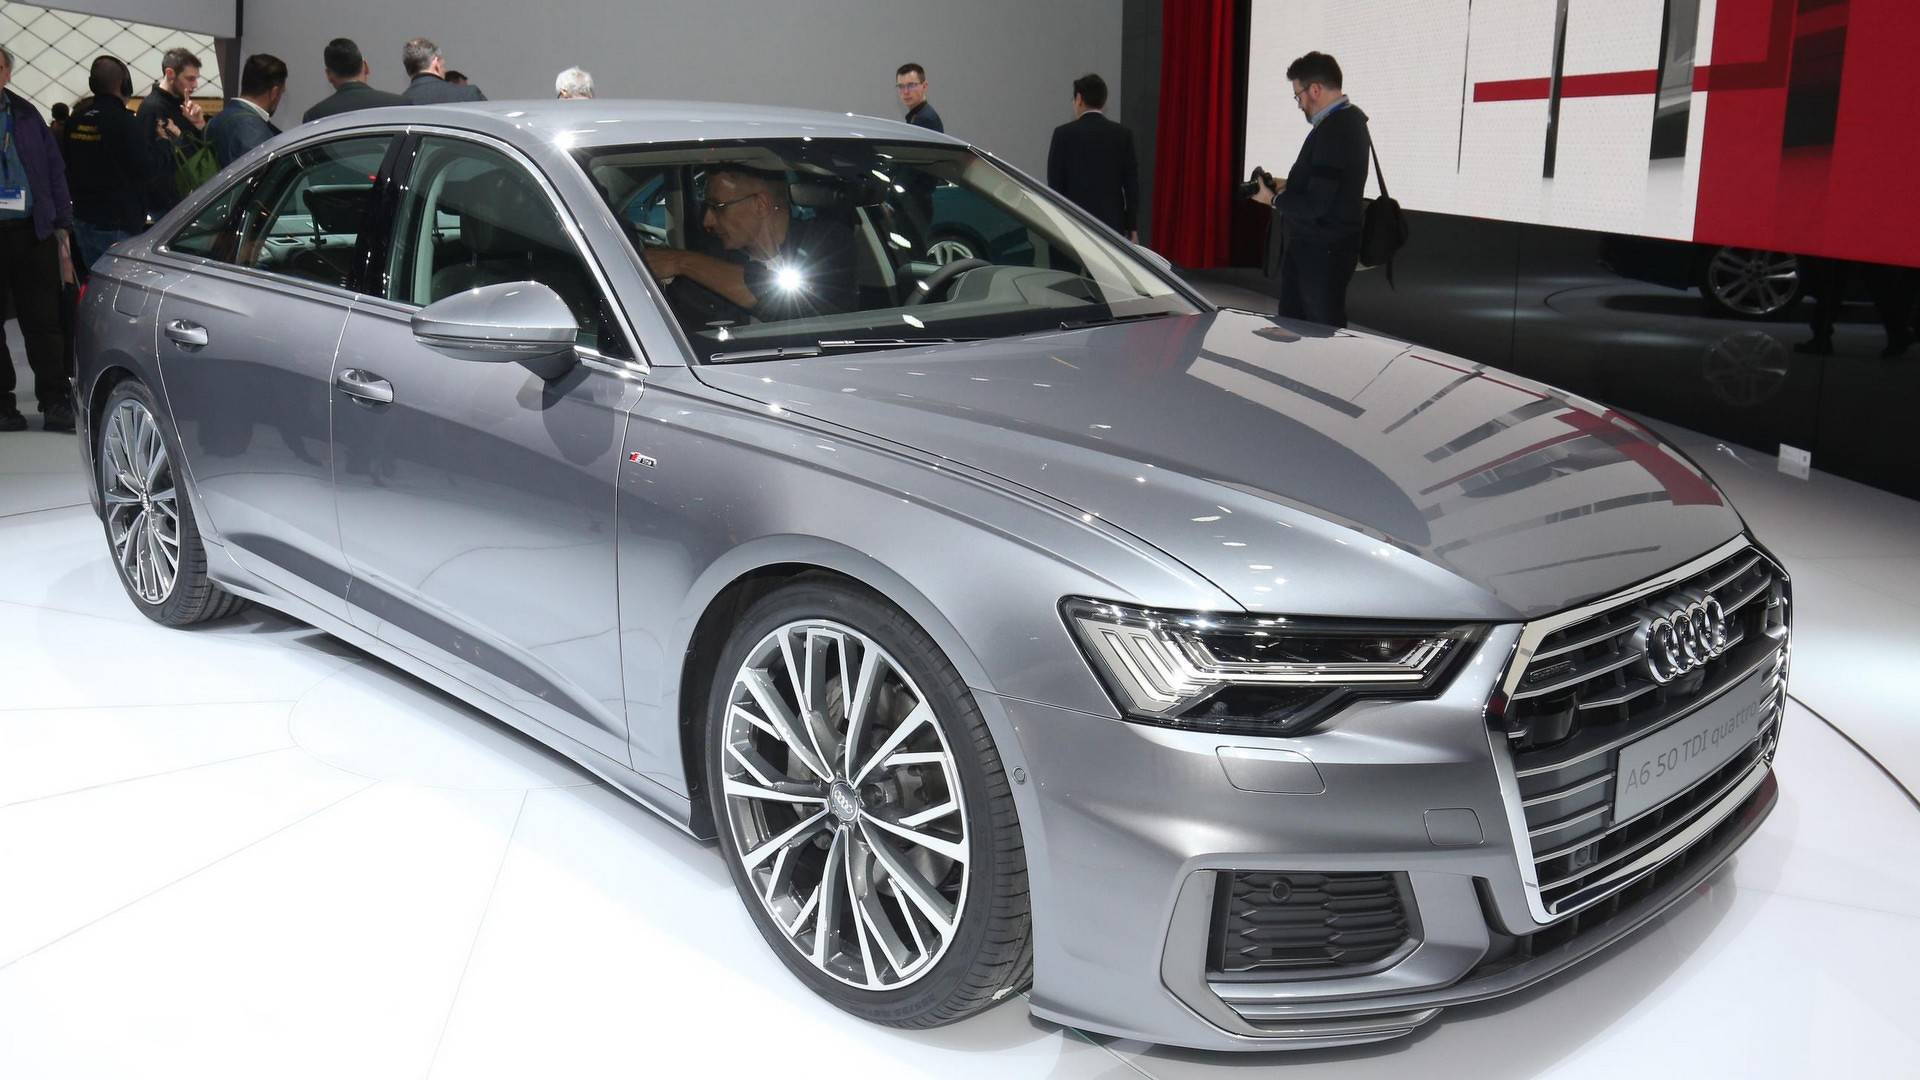 Audi A Starts At Offers Tons Of Tech On Higher Grades - A6 audi